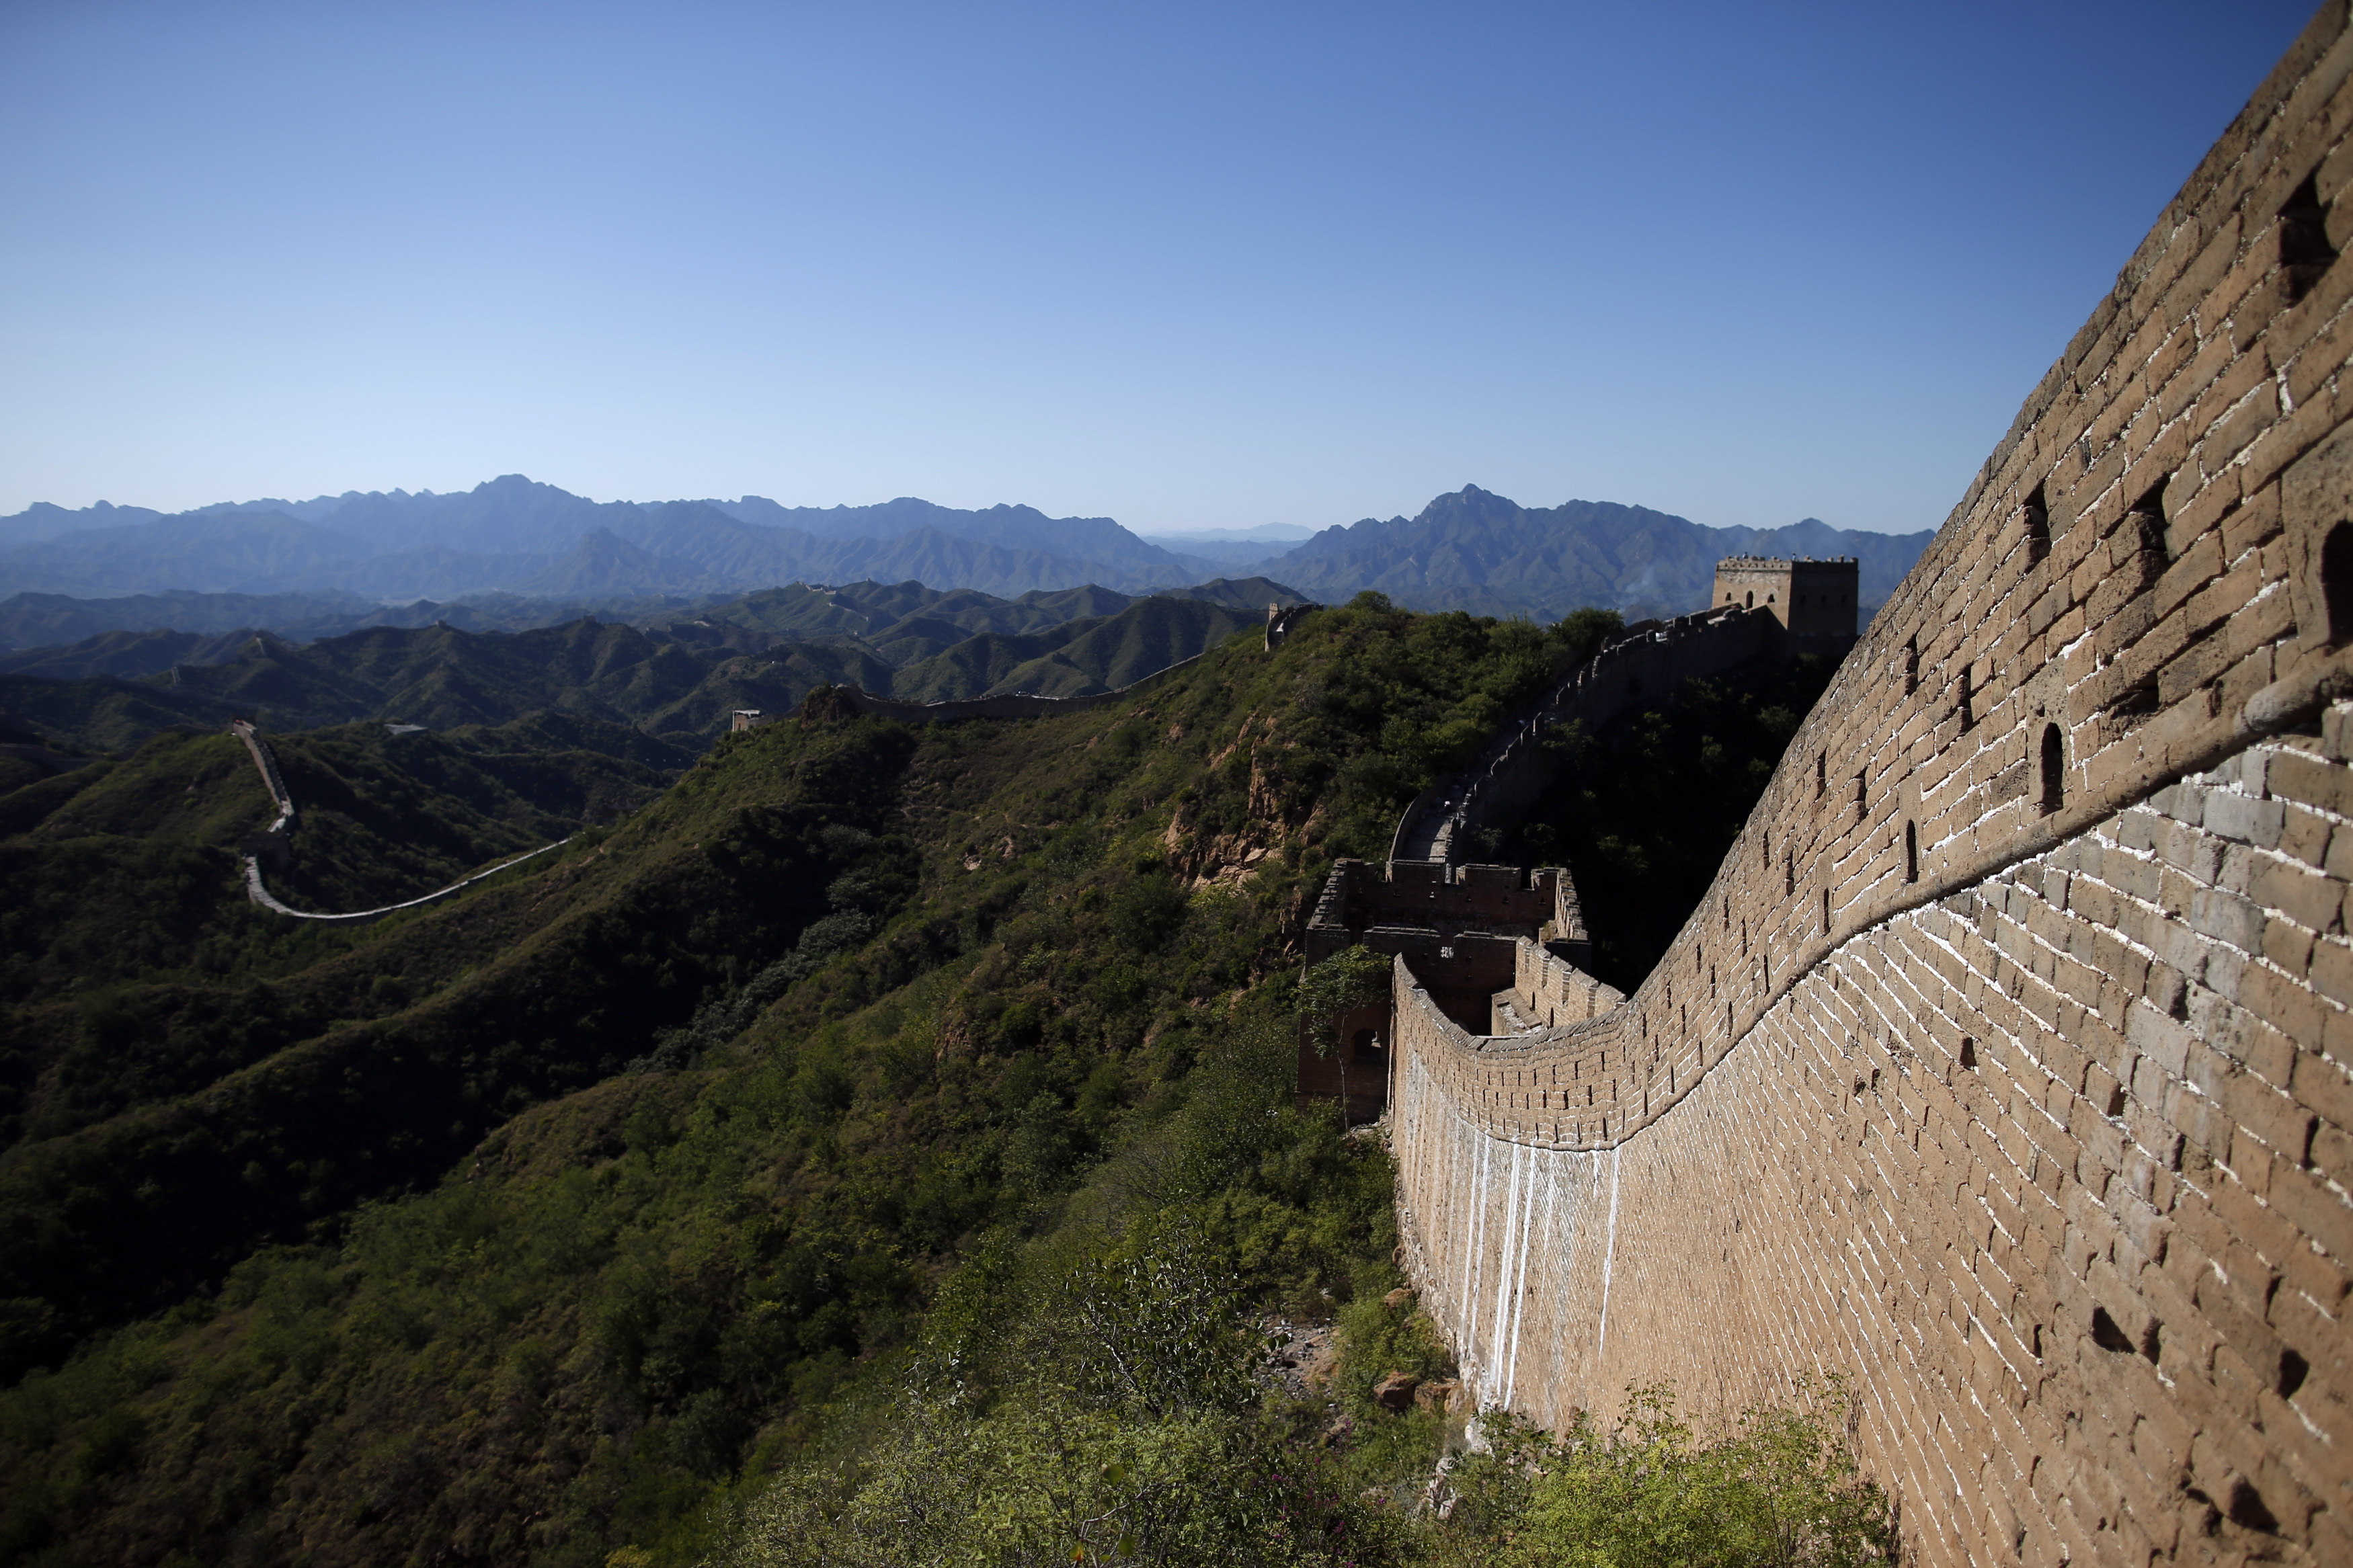 A section of the Great Wall of China is pictured.